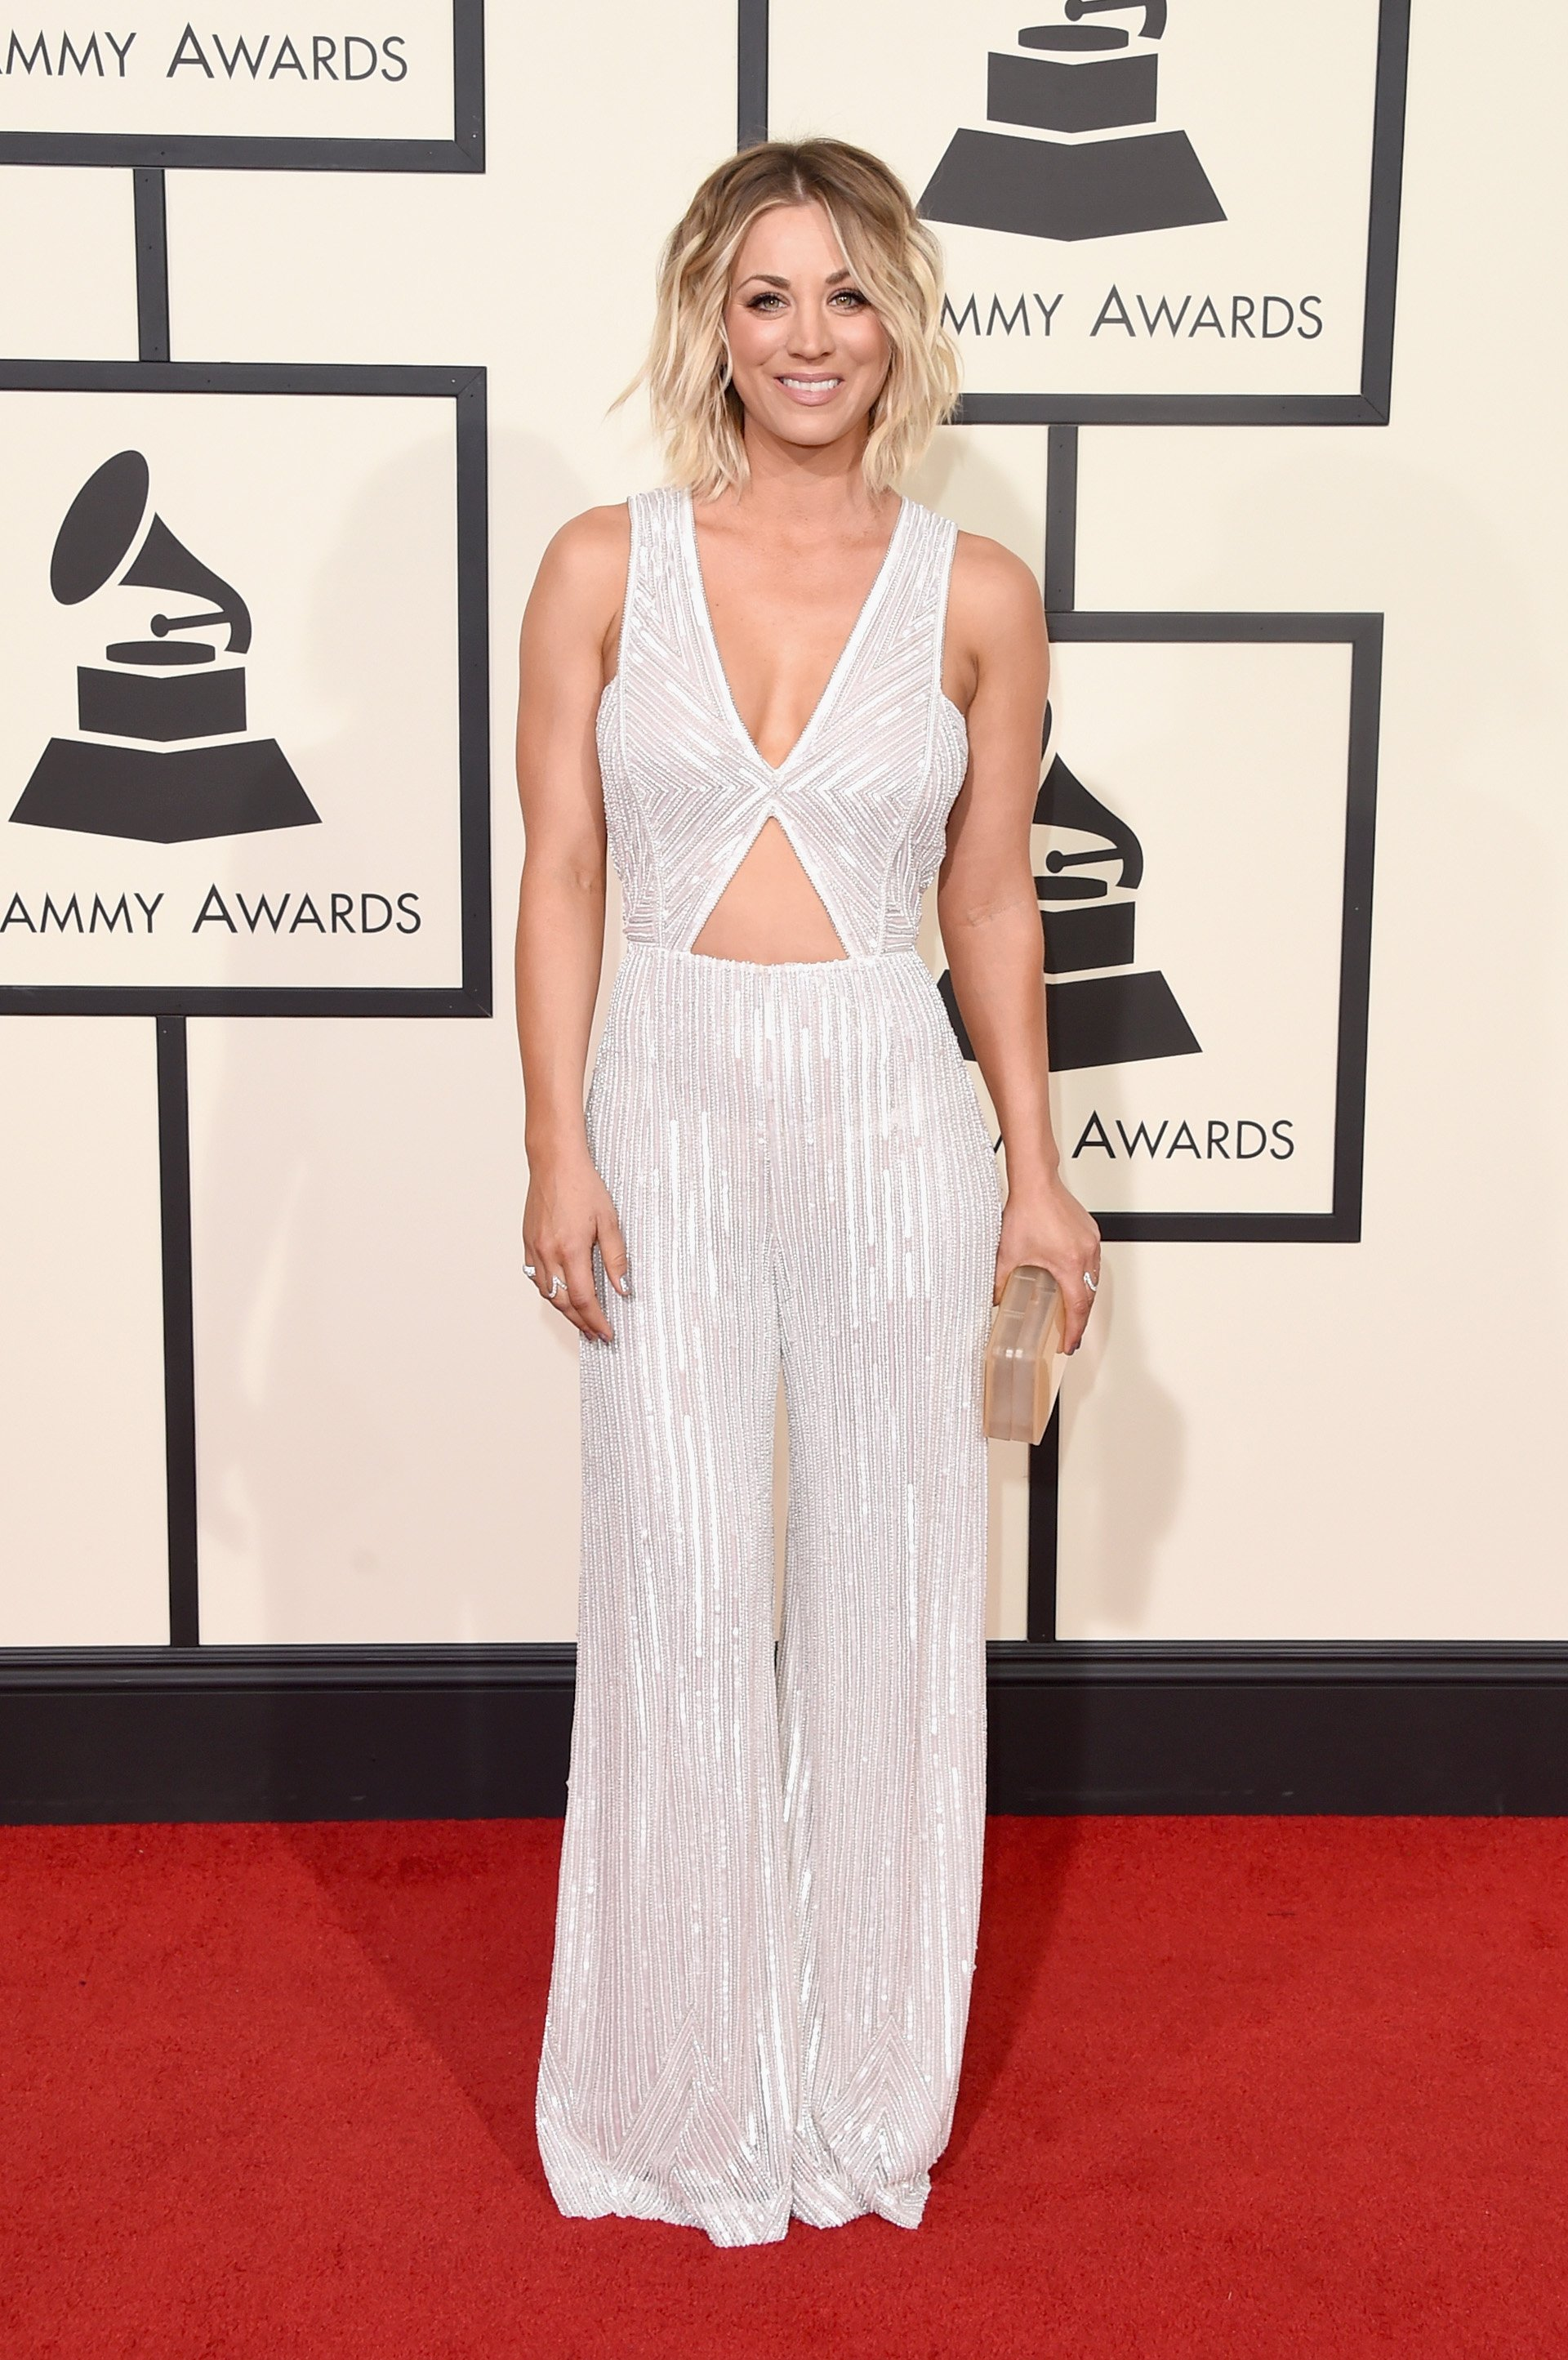 Kaley Cuoco attends The 58th GRAMMY Awards at Staples Center on February 15, 2016 in Los Angeles, California   Photo: Getty Images